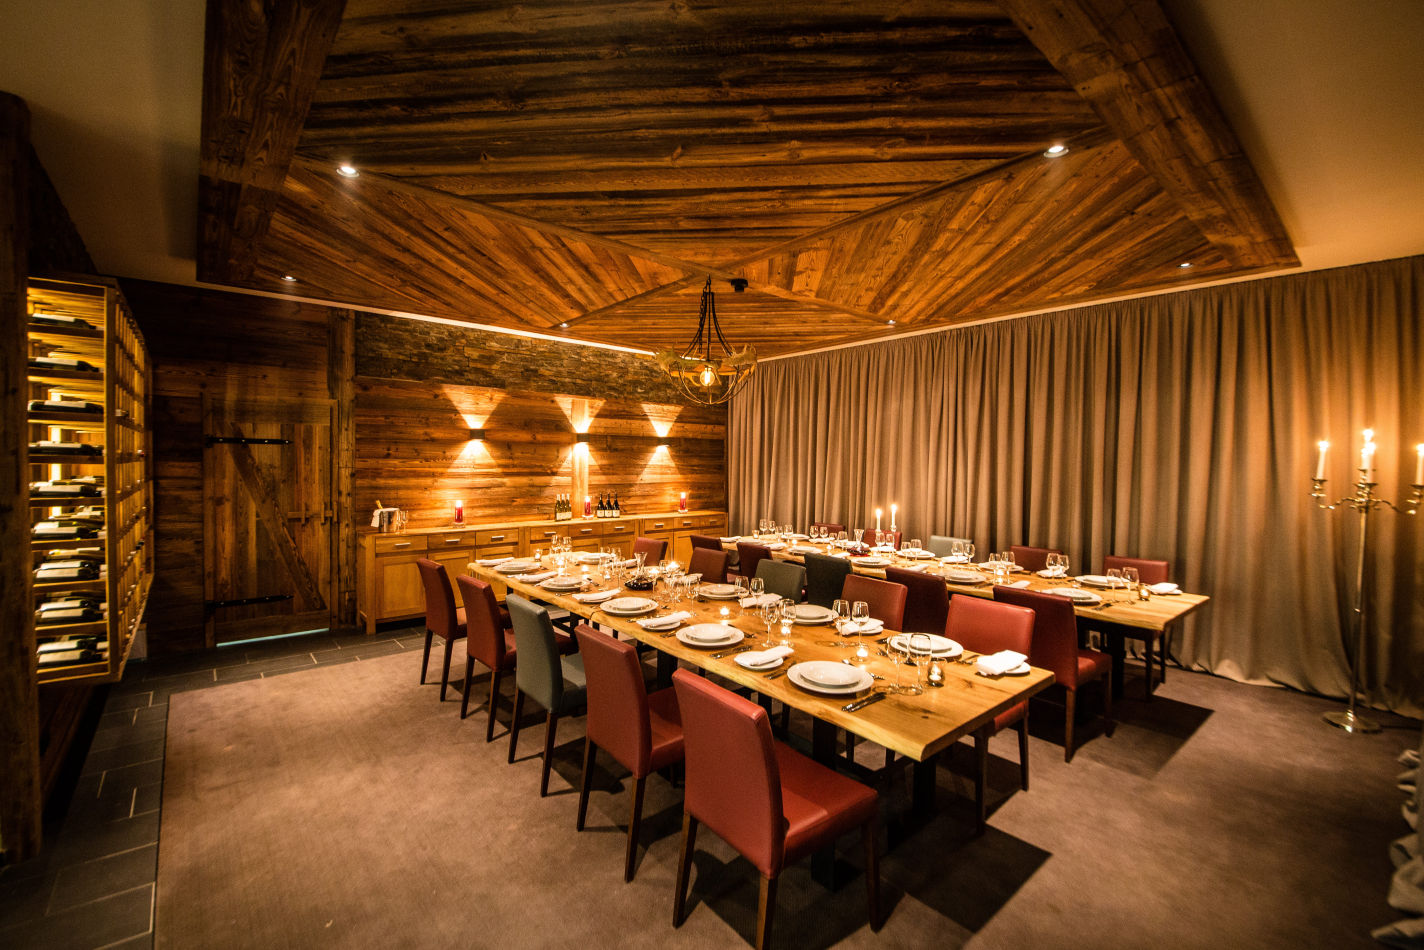 St Anton's Montford Lodge's impressive wooden dining area with timber-clad walls and ceiling